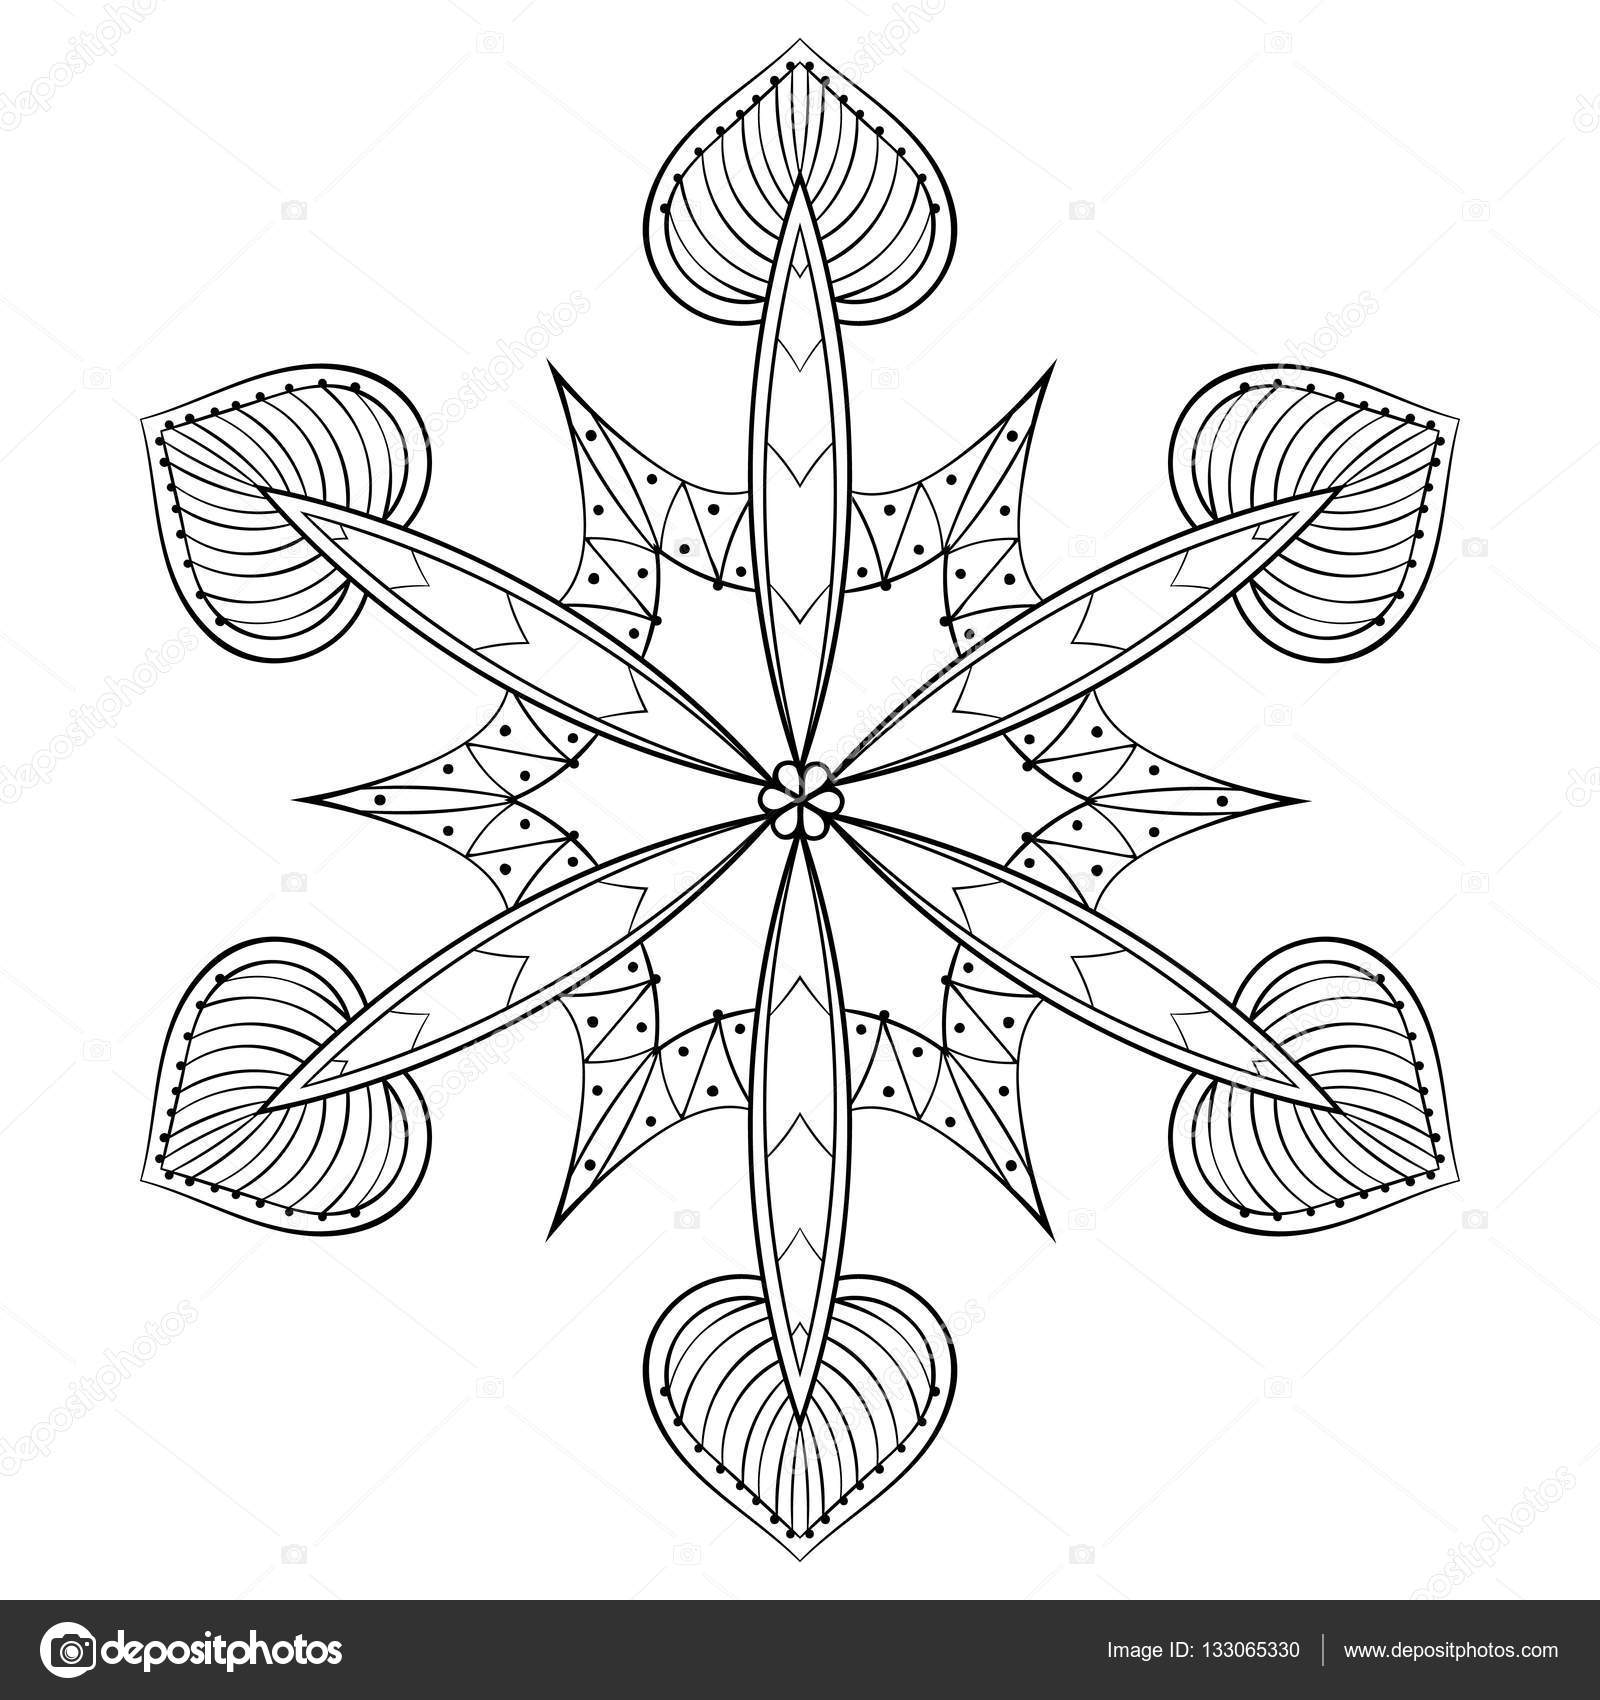 Christmas ornaments - Christmas Adult Coloring Pages | 1700x1600